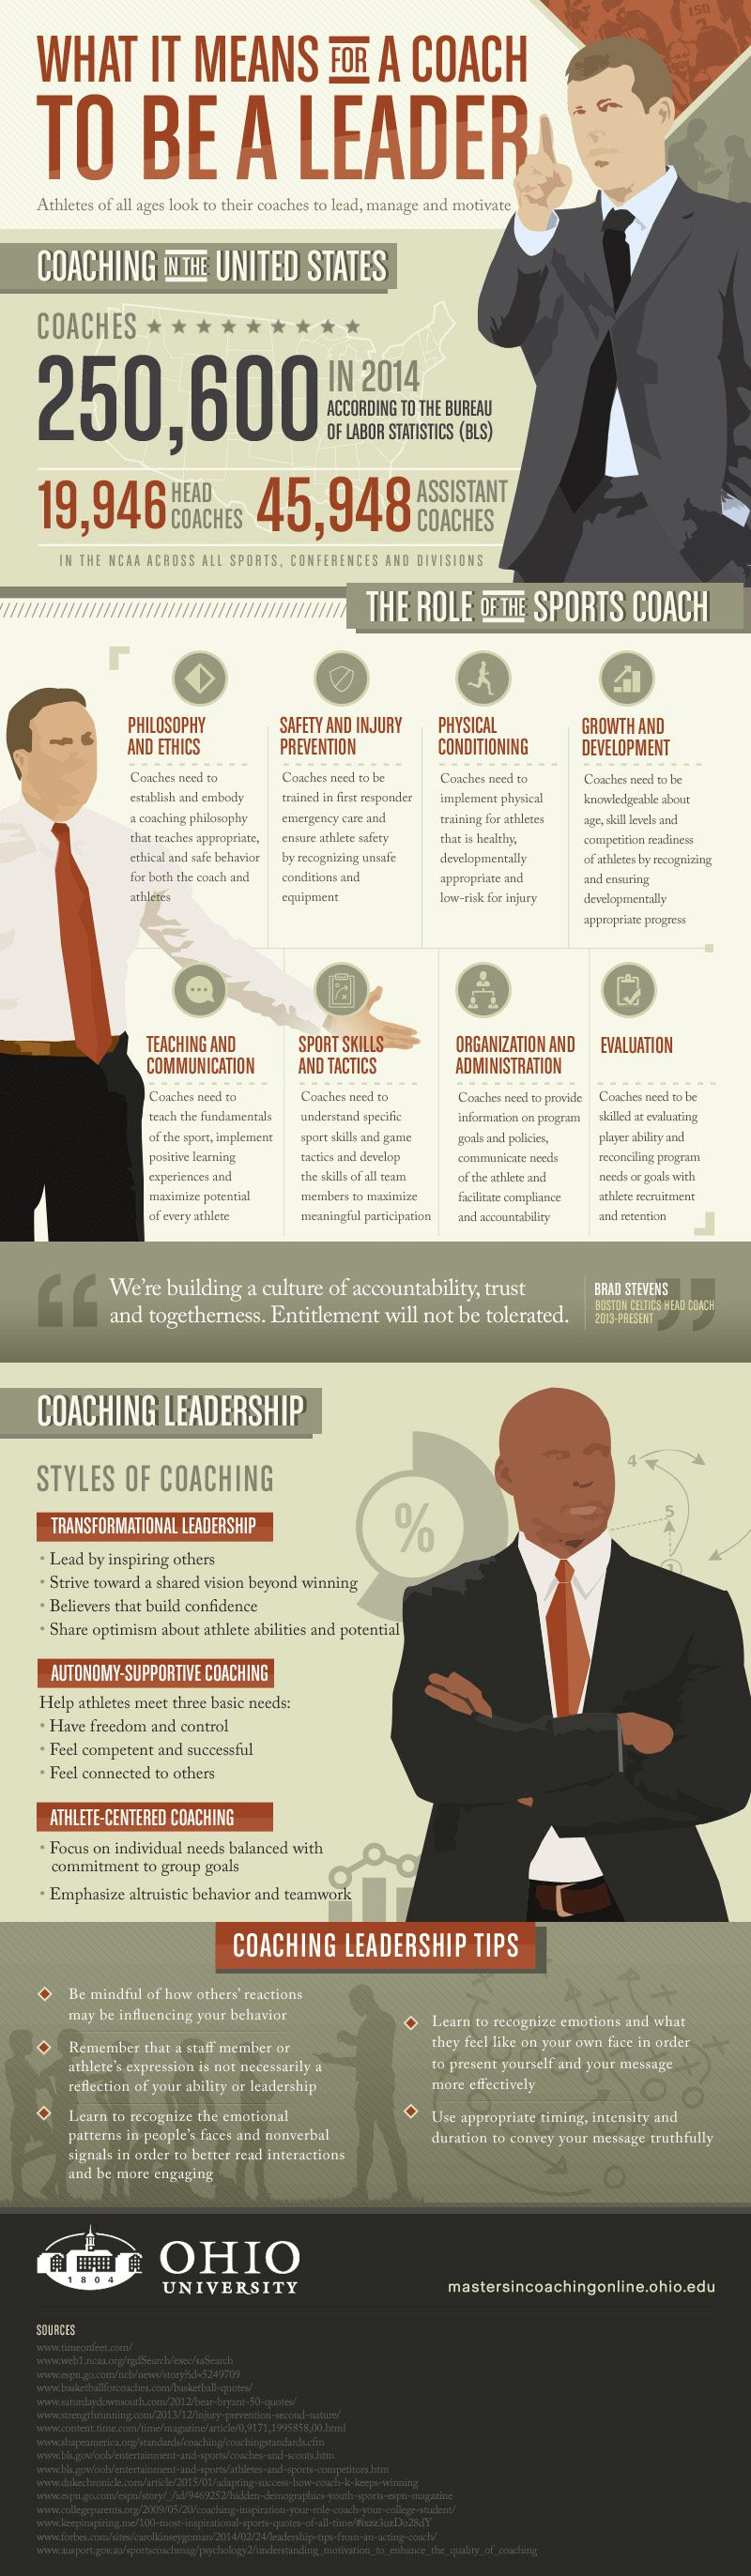 What it Means for a Coach to be a Leader